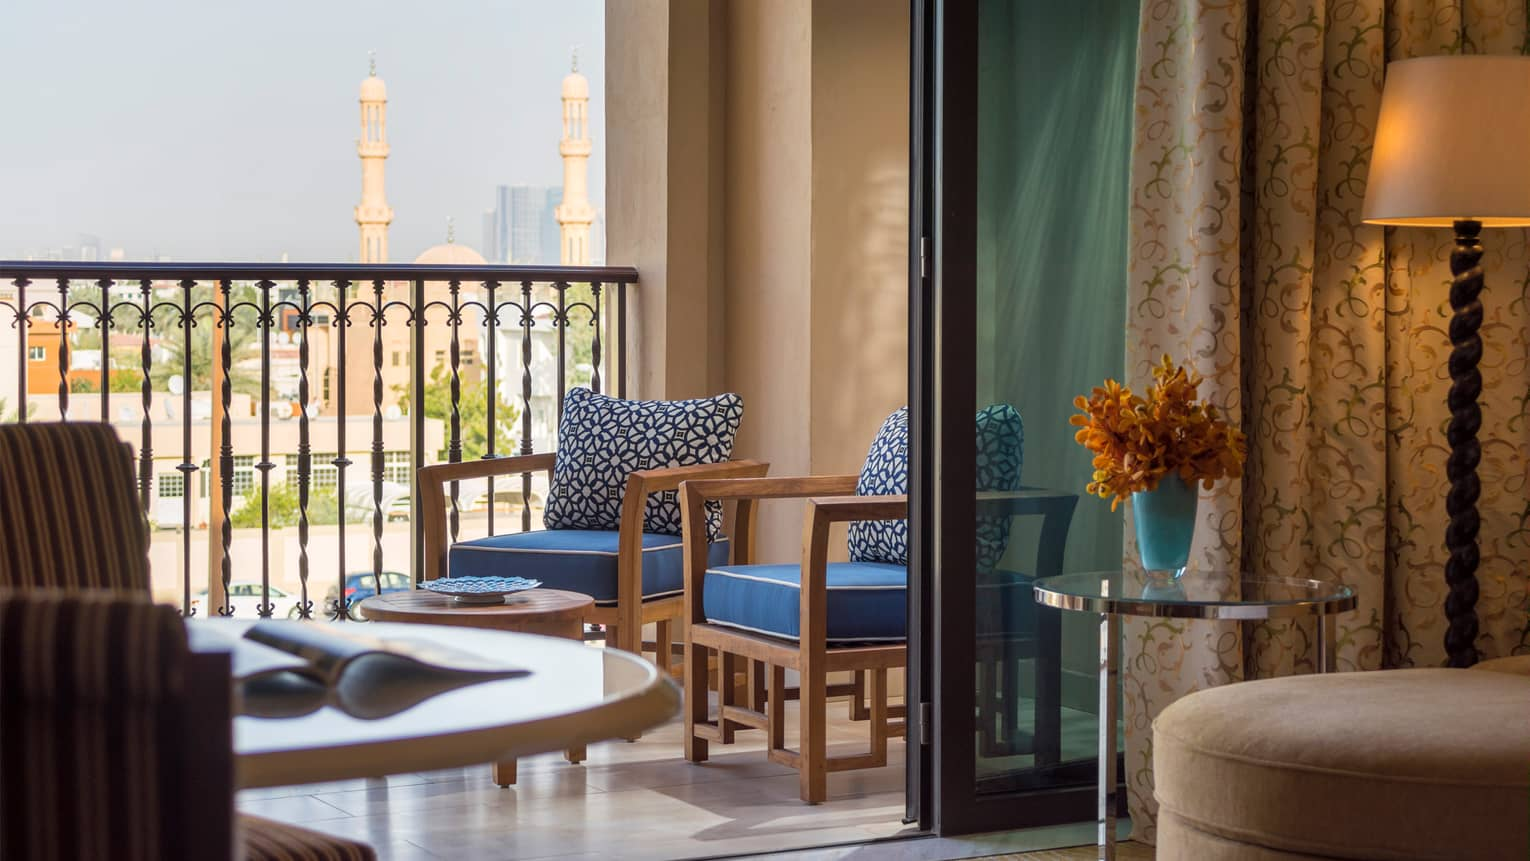 Deluxe City View room looking out at patio with two wood chairs and blue cushions, Dubai skyline views